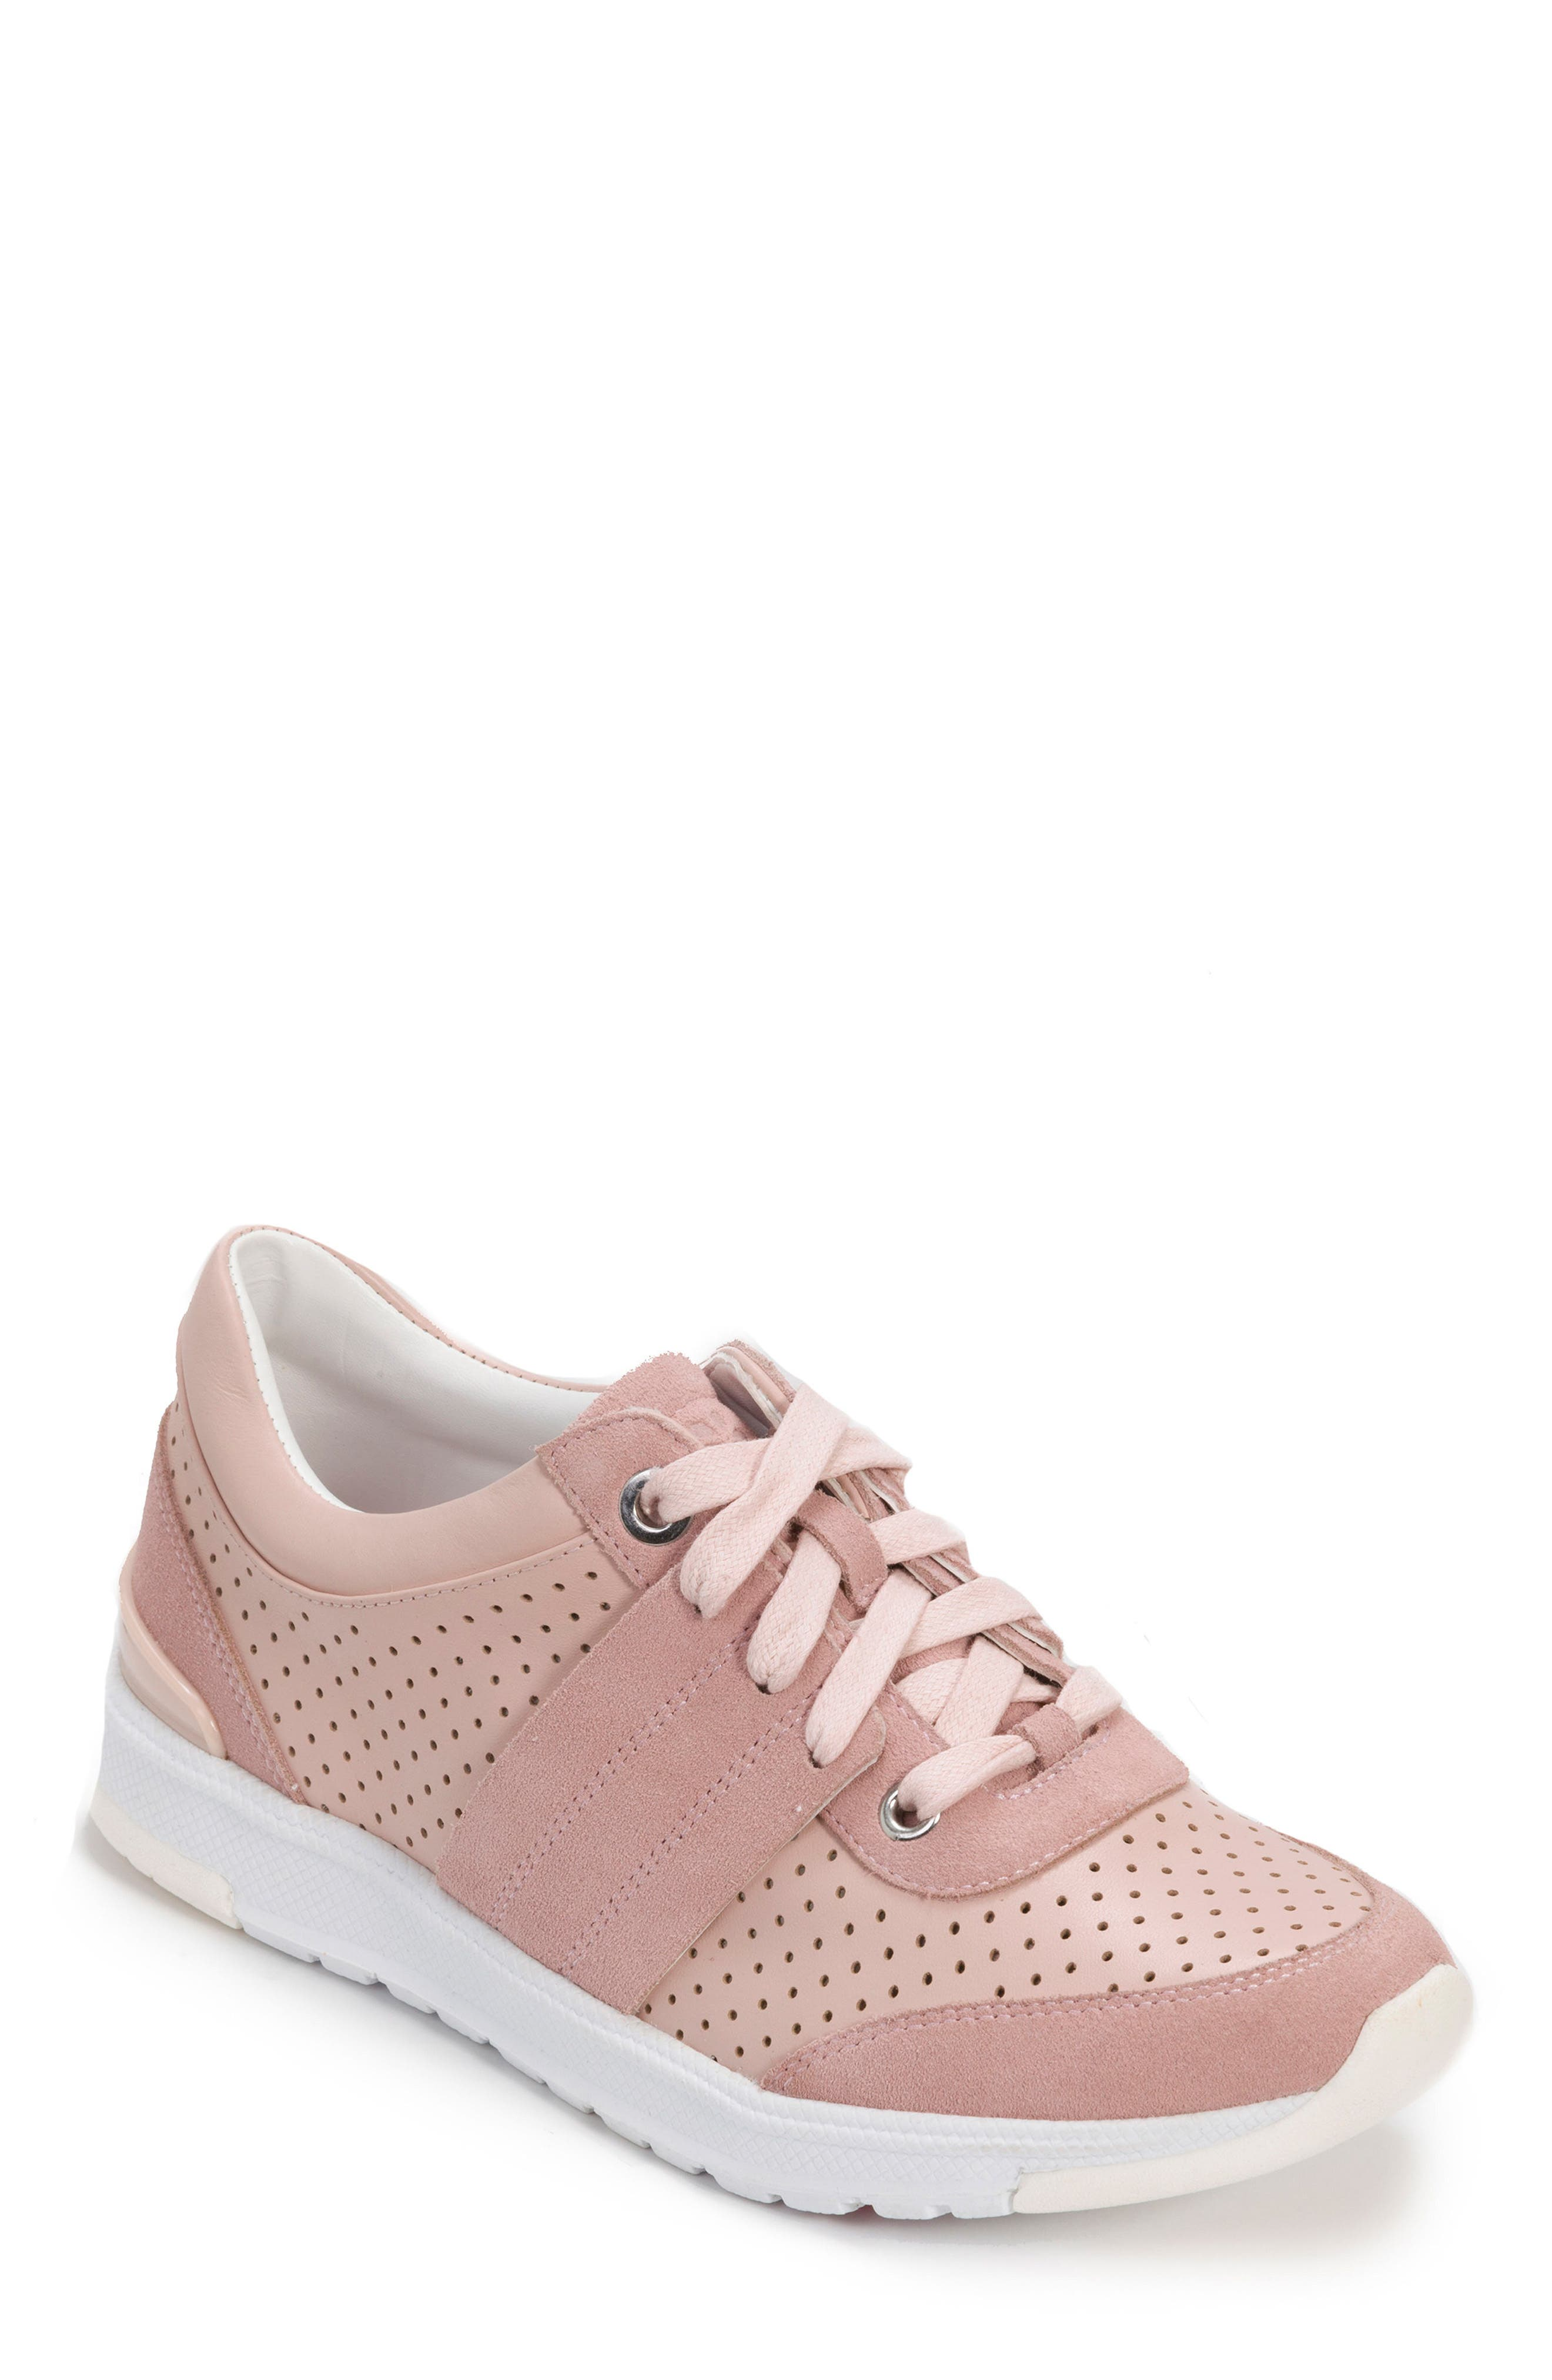 FOOT PETALS Bea Sneaker in Blush Leather